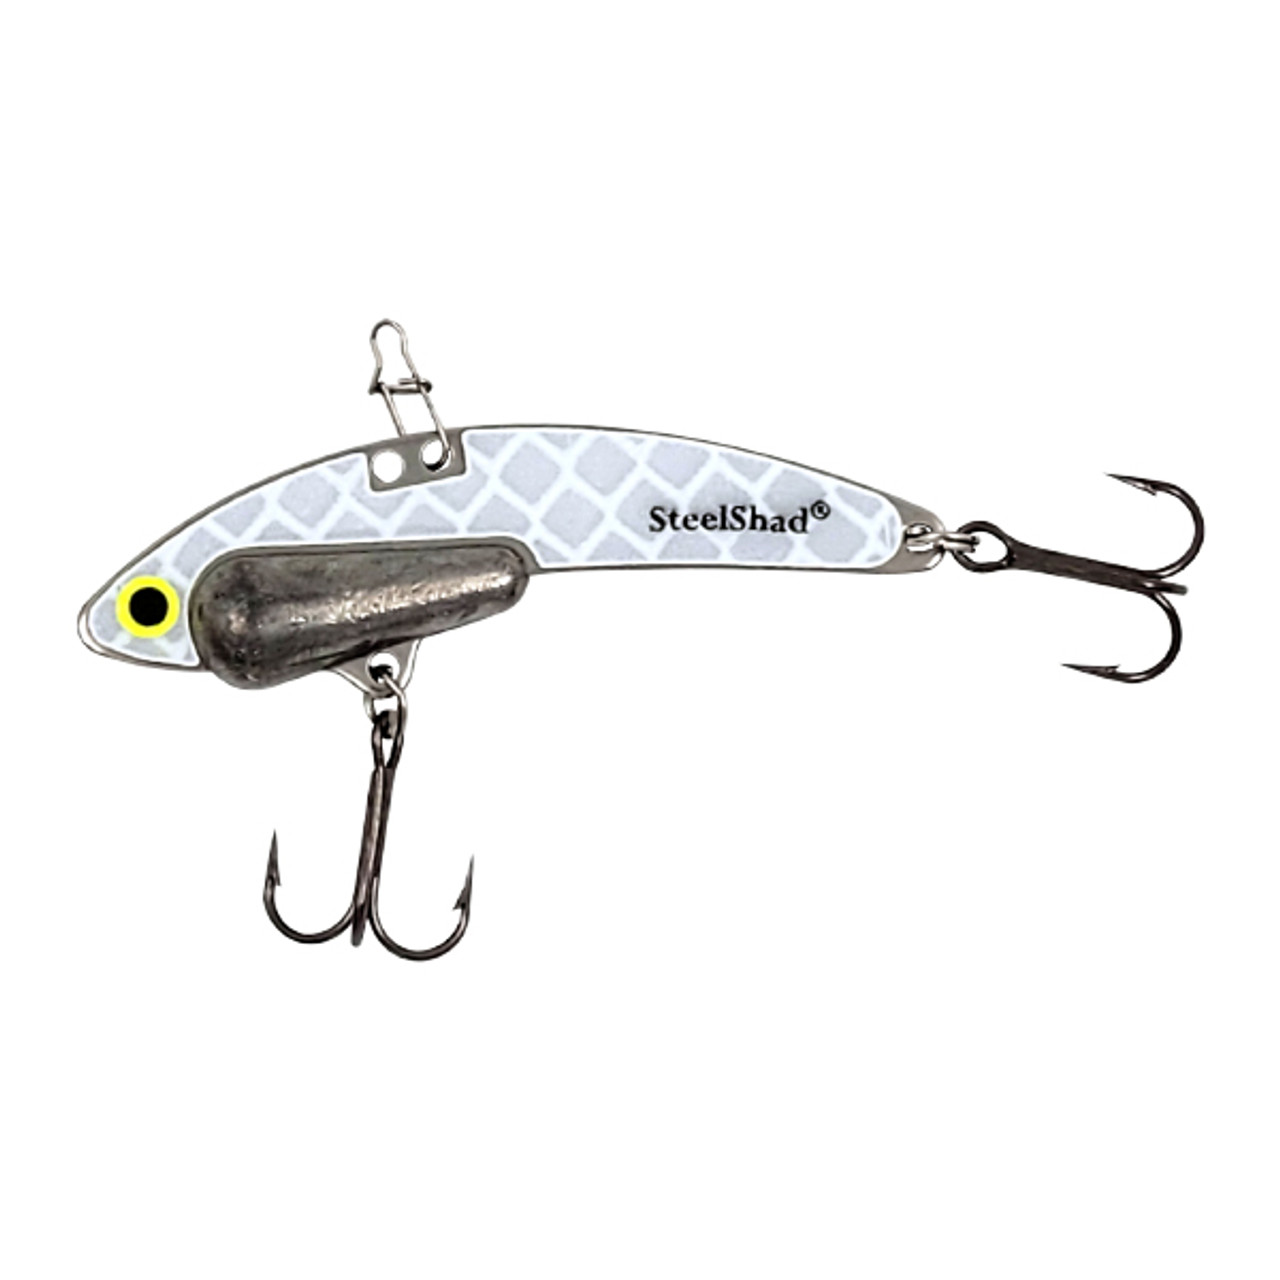 SteelShad Heavy - 1/2 oz - Glow Silver